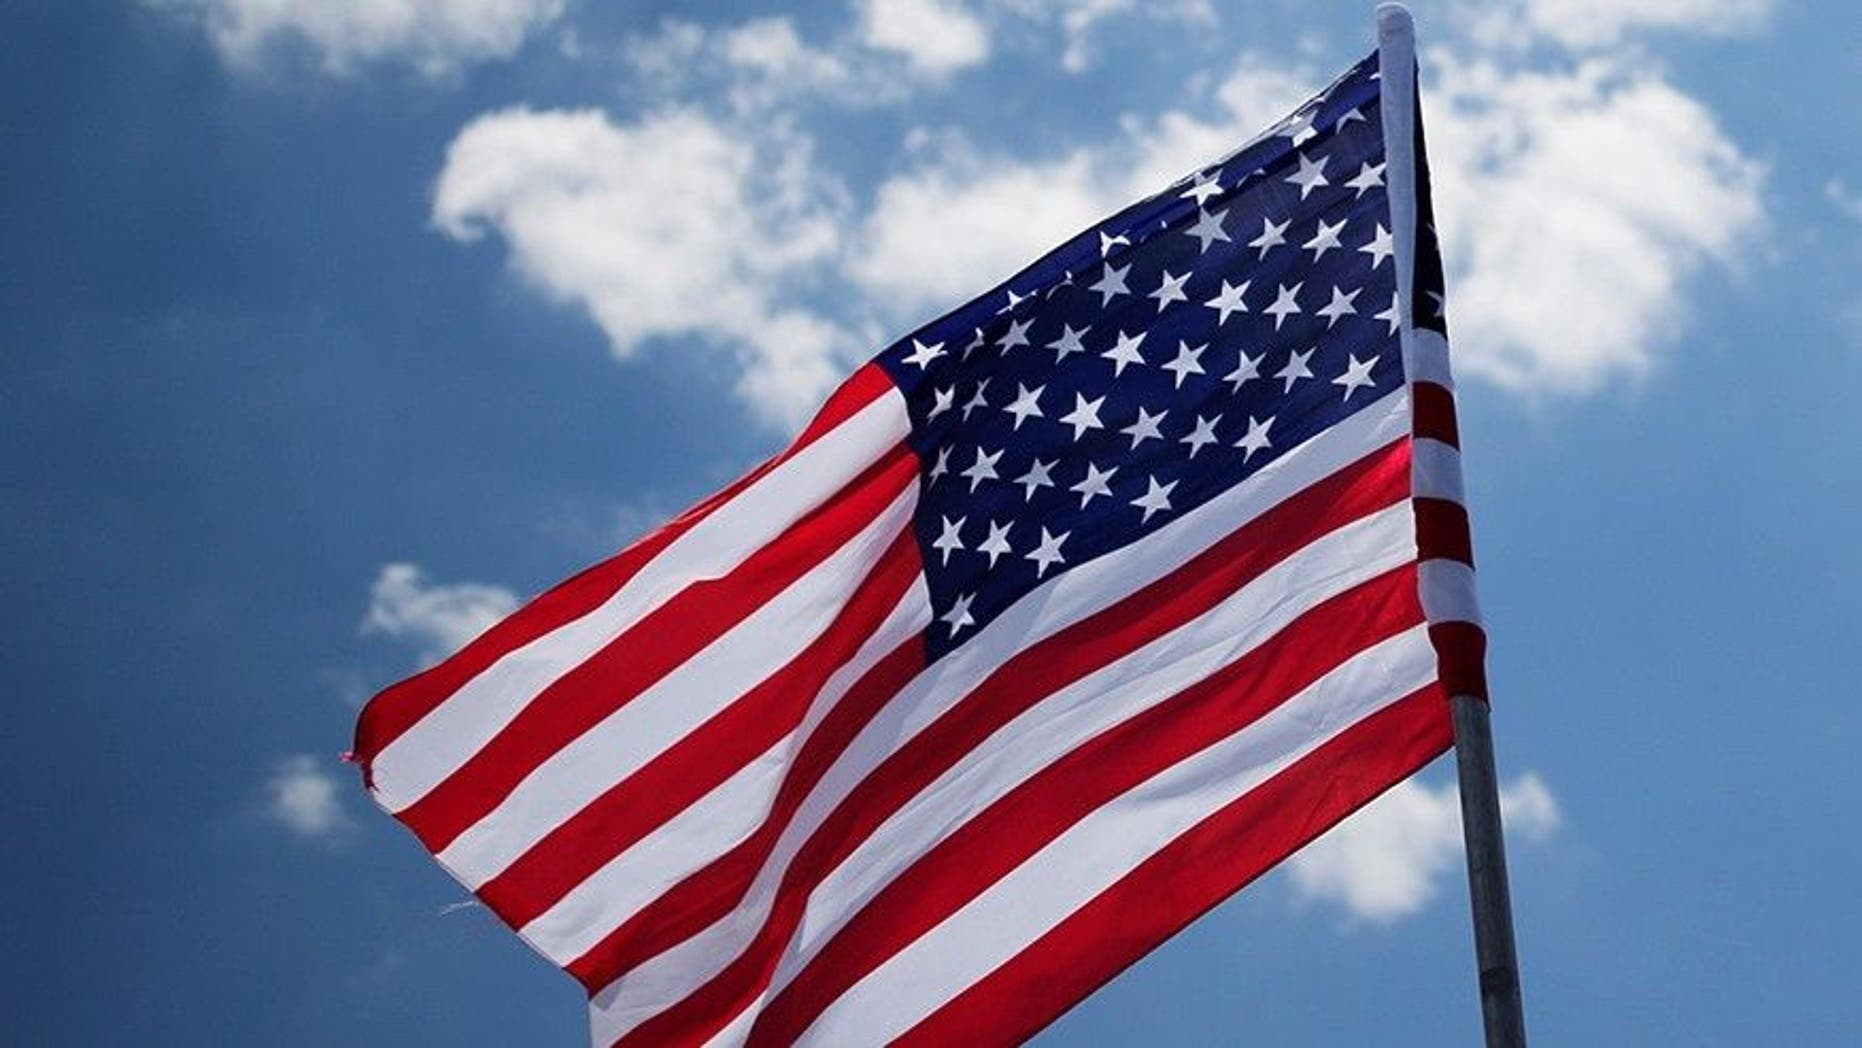 Flag Day Facts  Things You Didnt Know About The American Flag